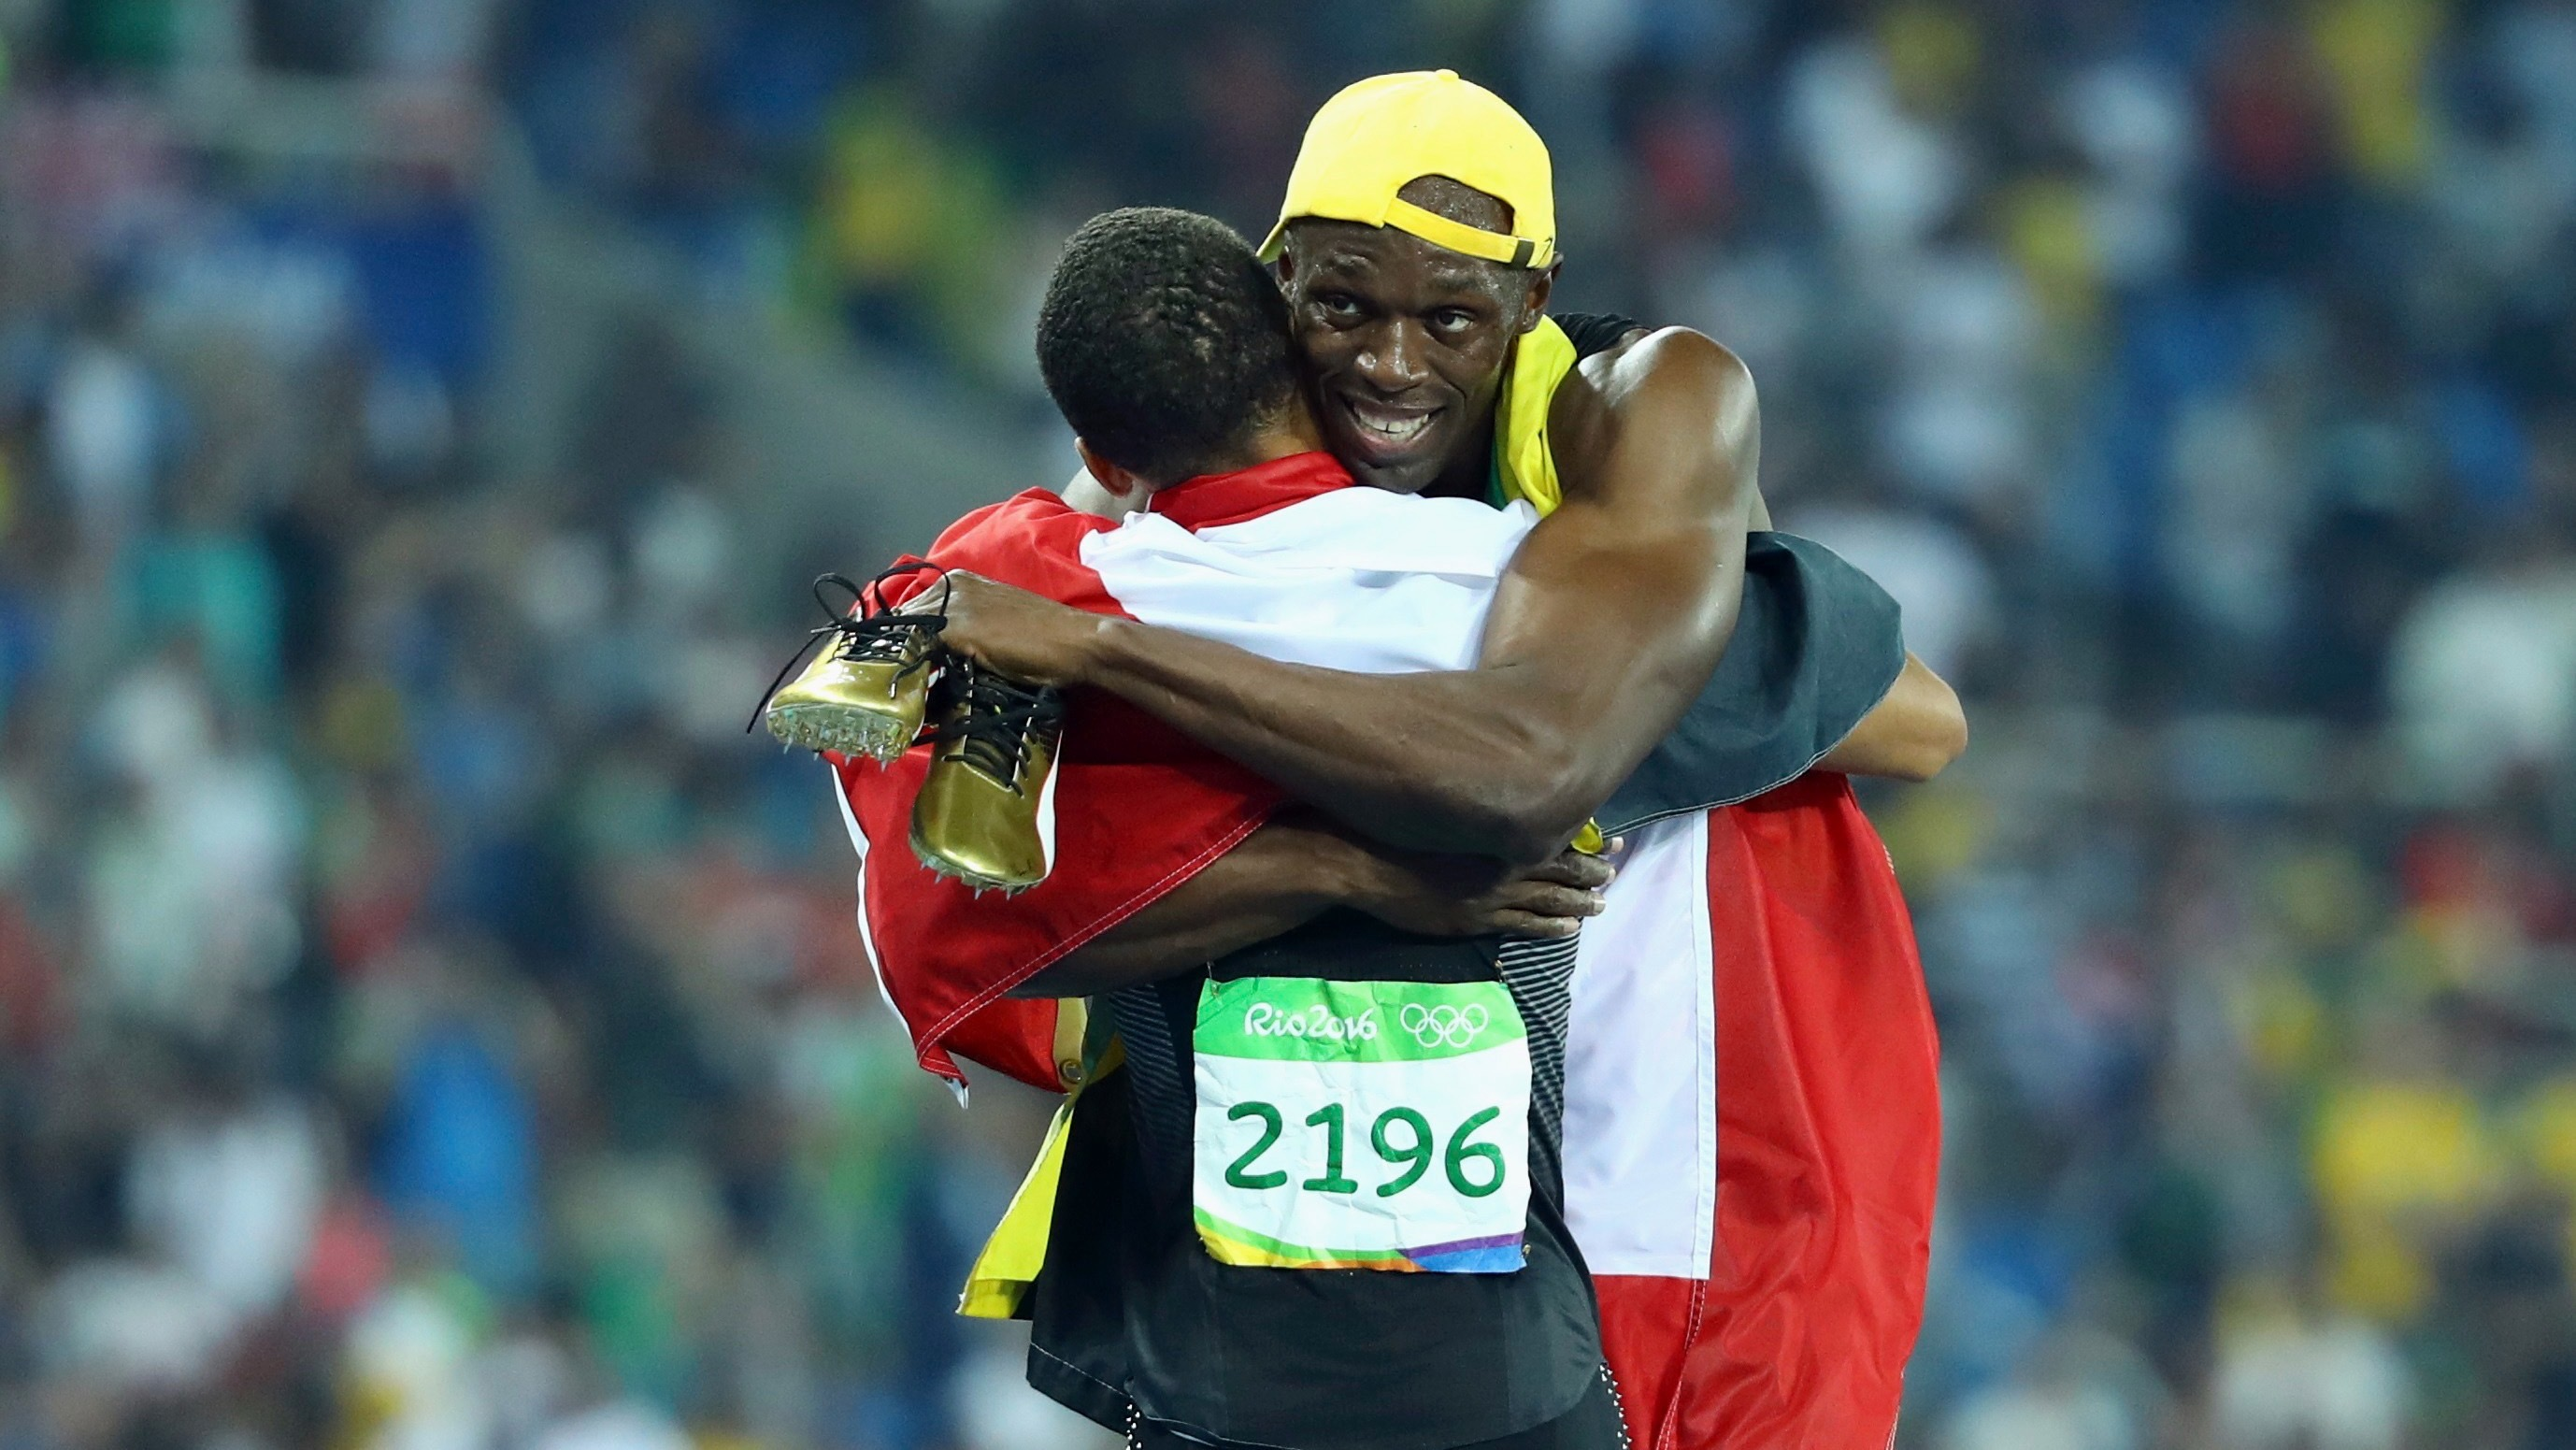 2016 Rio Olympics - Athletics - Final - Men's 100m Final - Olympic Stadium - Rio de Janeiro, Brazil - 14/08/2016. Gold medalist Usain Bolt (JAM) of Jamaica embraces bronze medalist Andre De Grasse (CAN) of Canada.  REUTERS/Lucy Nicholson FOR EDITORIAL USE ONLY. NOT FOR SALE FOR MARKETING OR ADVERTISING CAMPAIGNS.   - RTX2KV2X